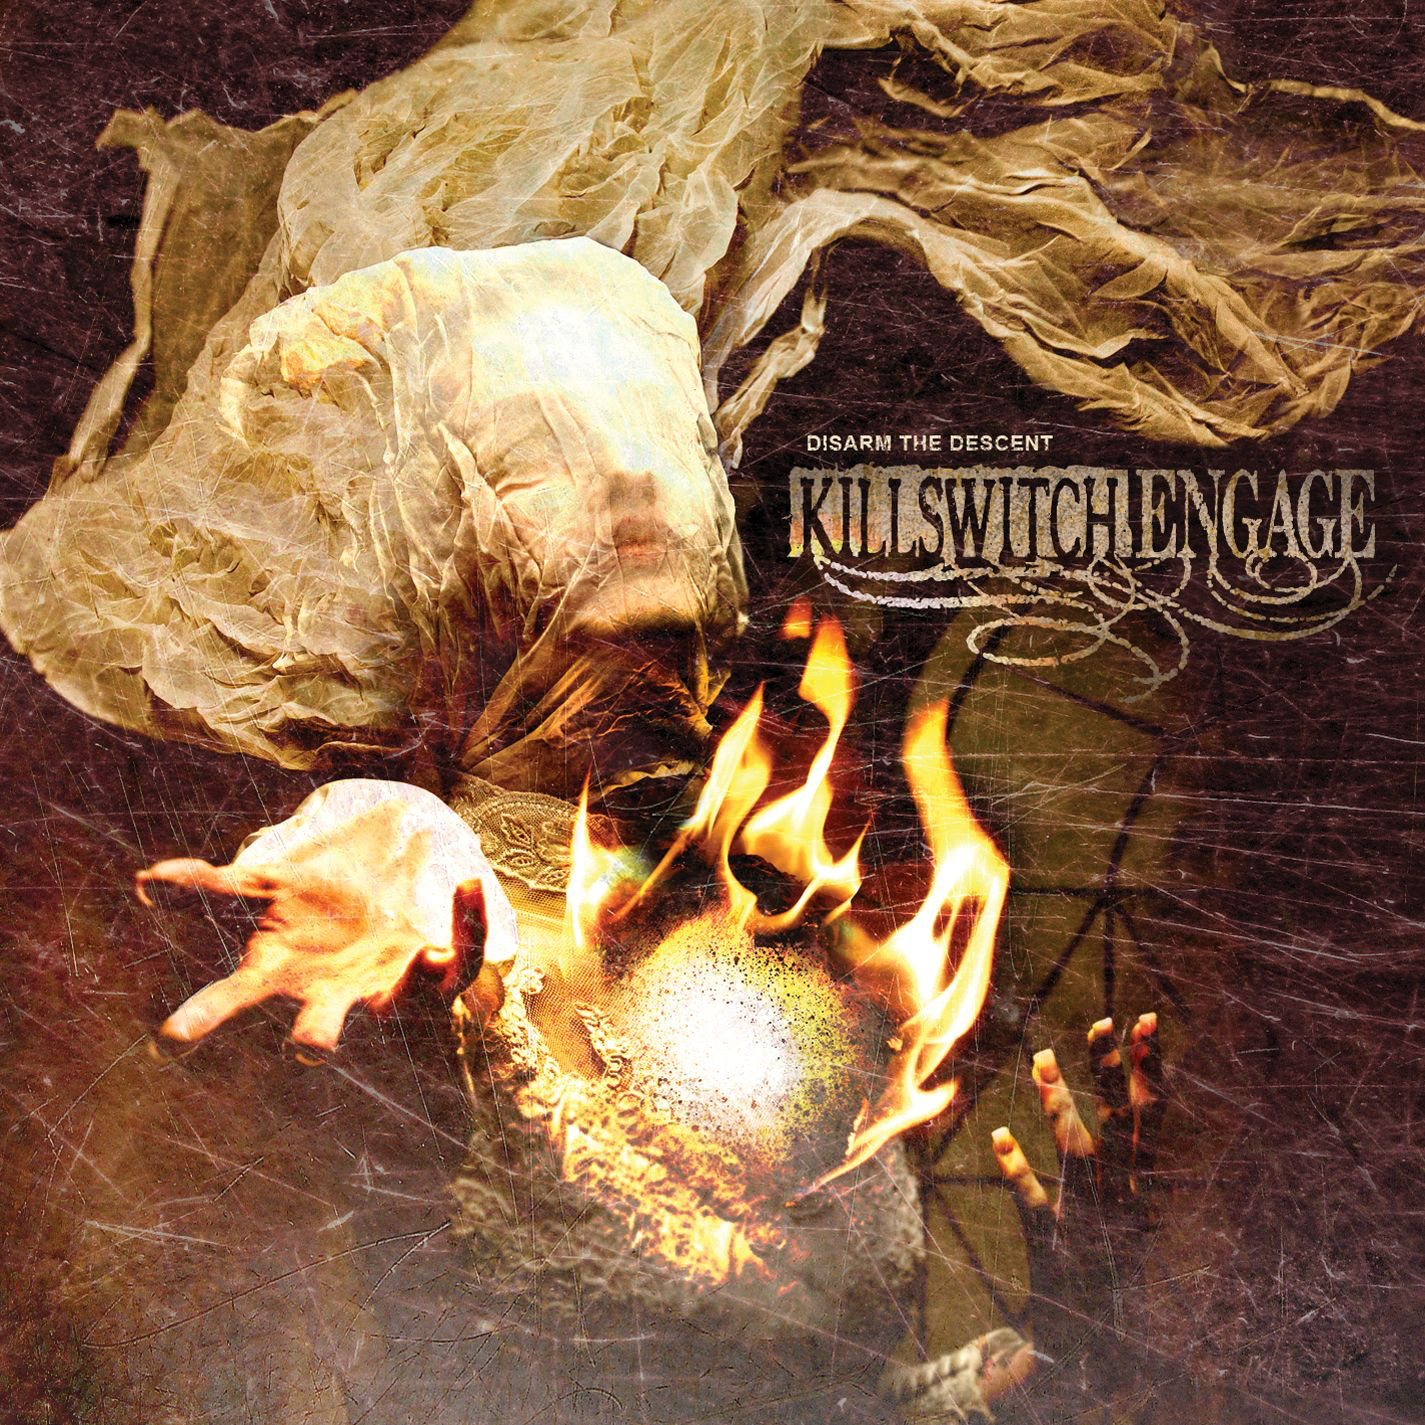 Killswitch Engage - Disarm The Descent (Special Edition) (2013)